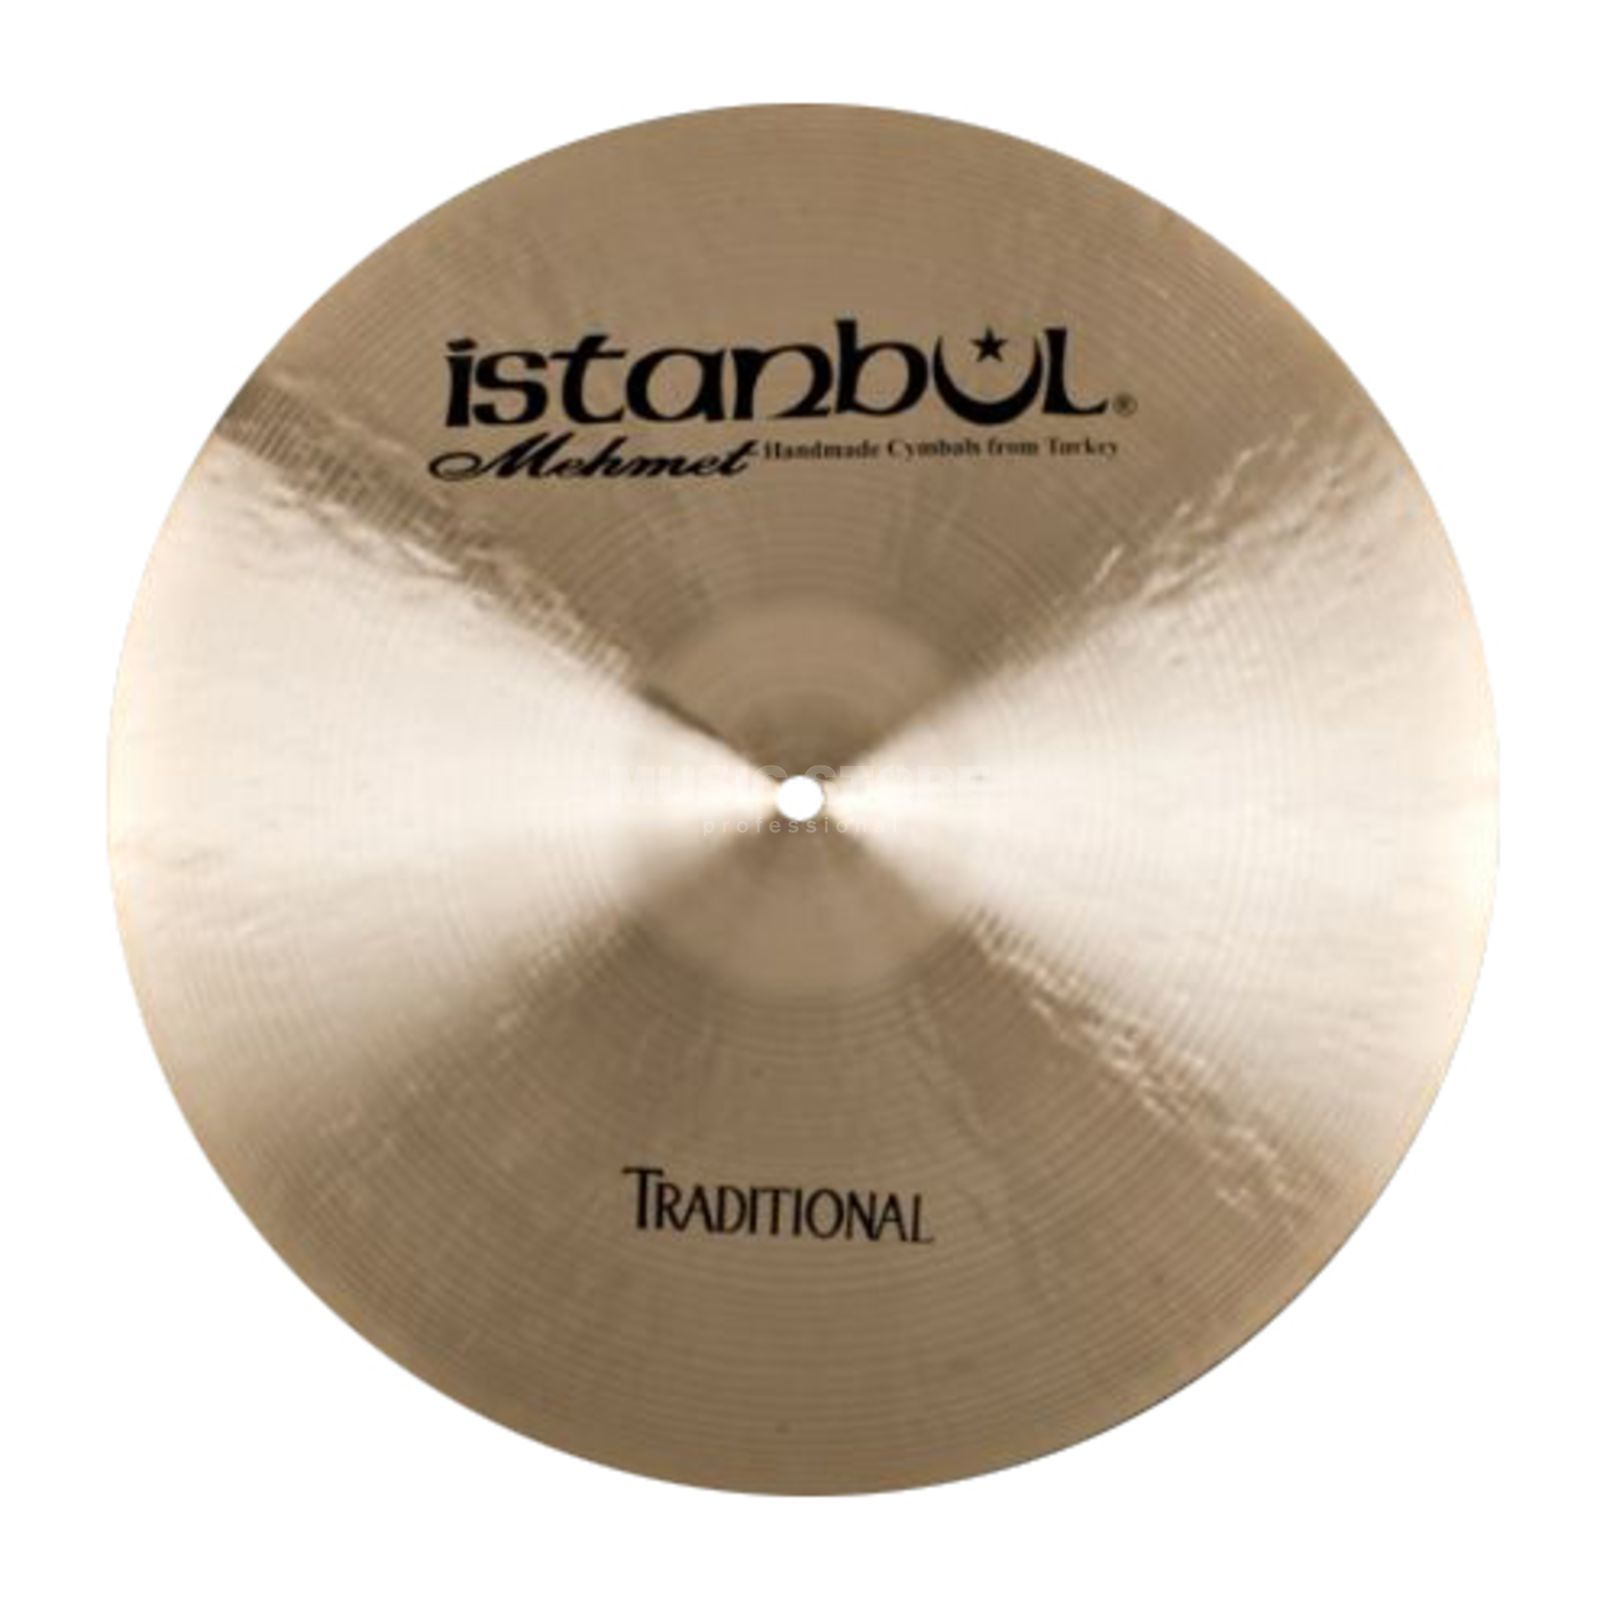 "Istanbul Traditional Dark Crash 17"", CD18 Изображение товара"